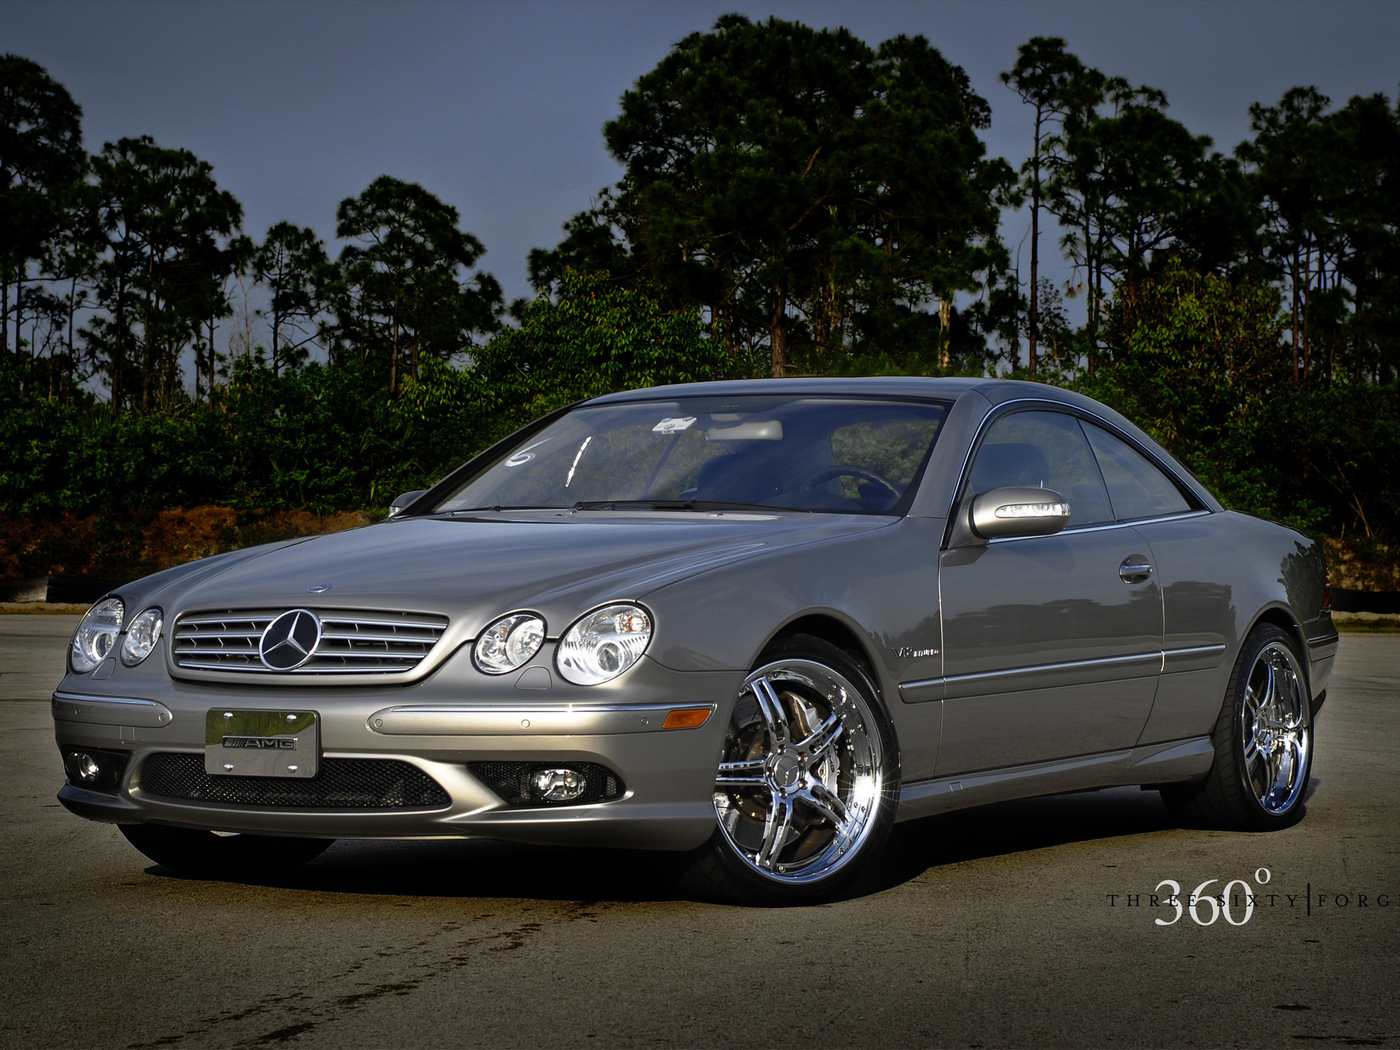 cl, cl 5.5, mercedes benz, amg